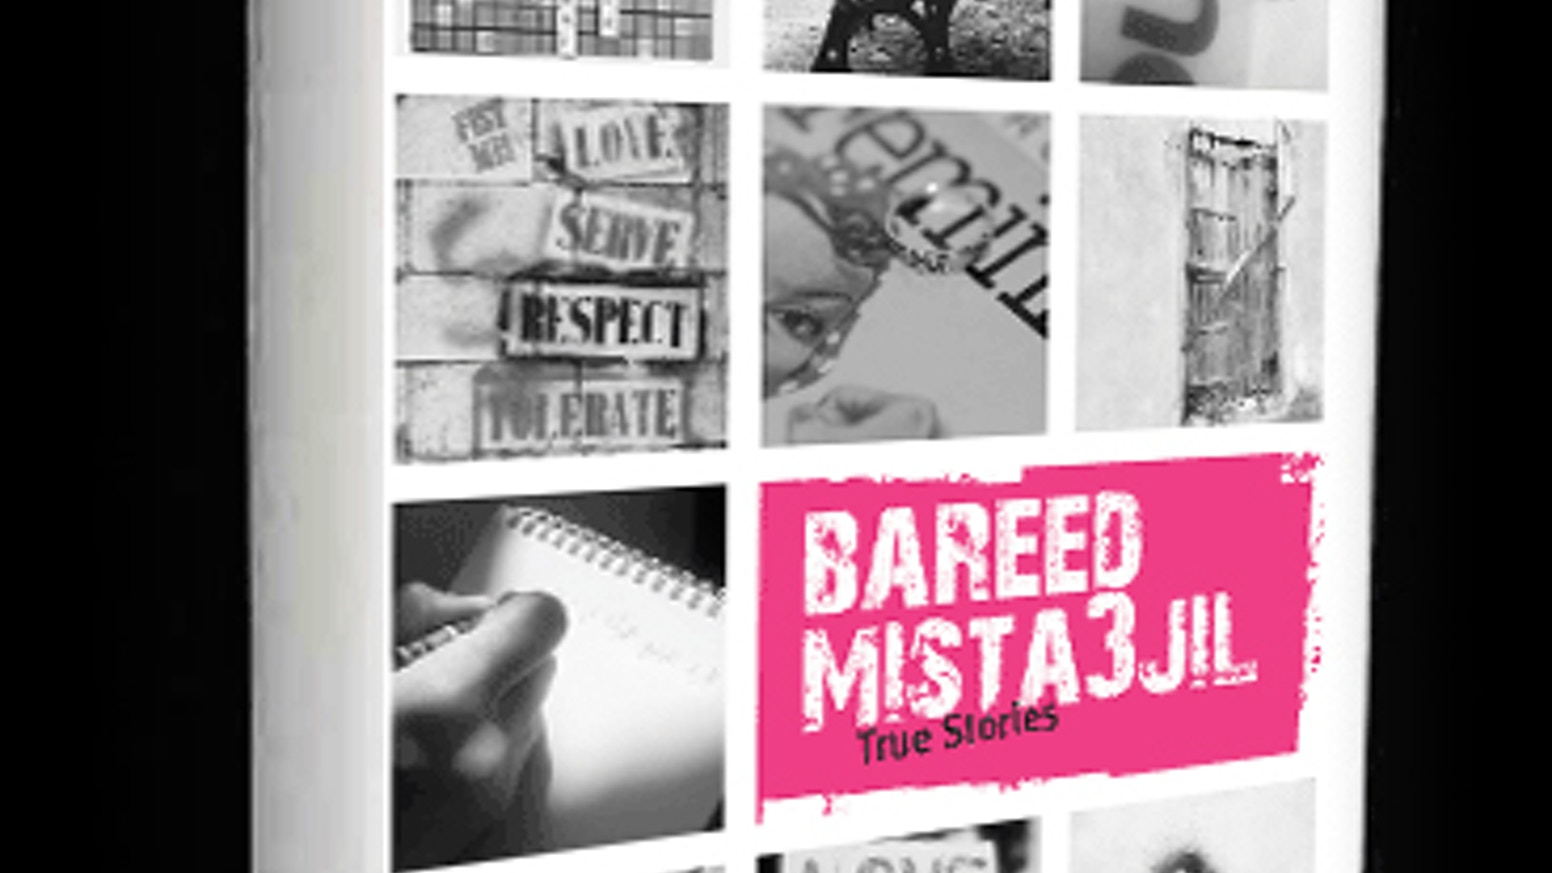 Bareed Mista3jil - Queer Arab Women's Stories staged reading by